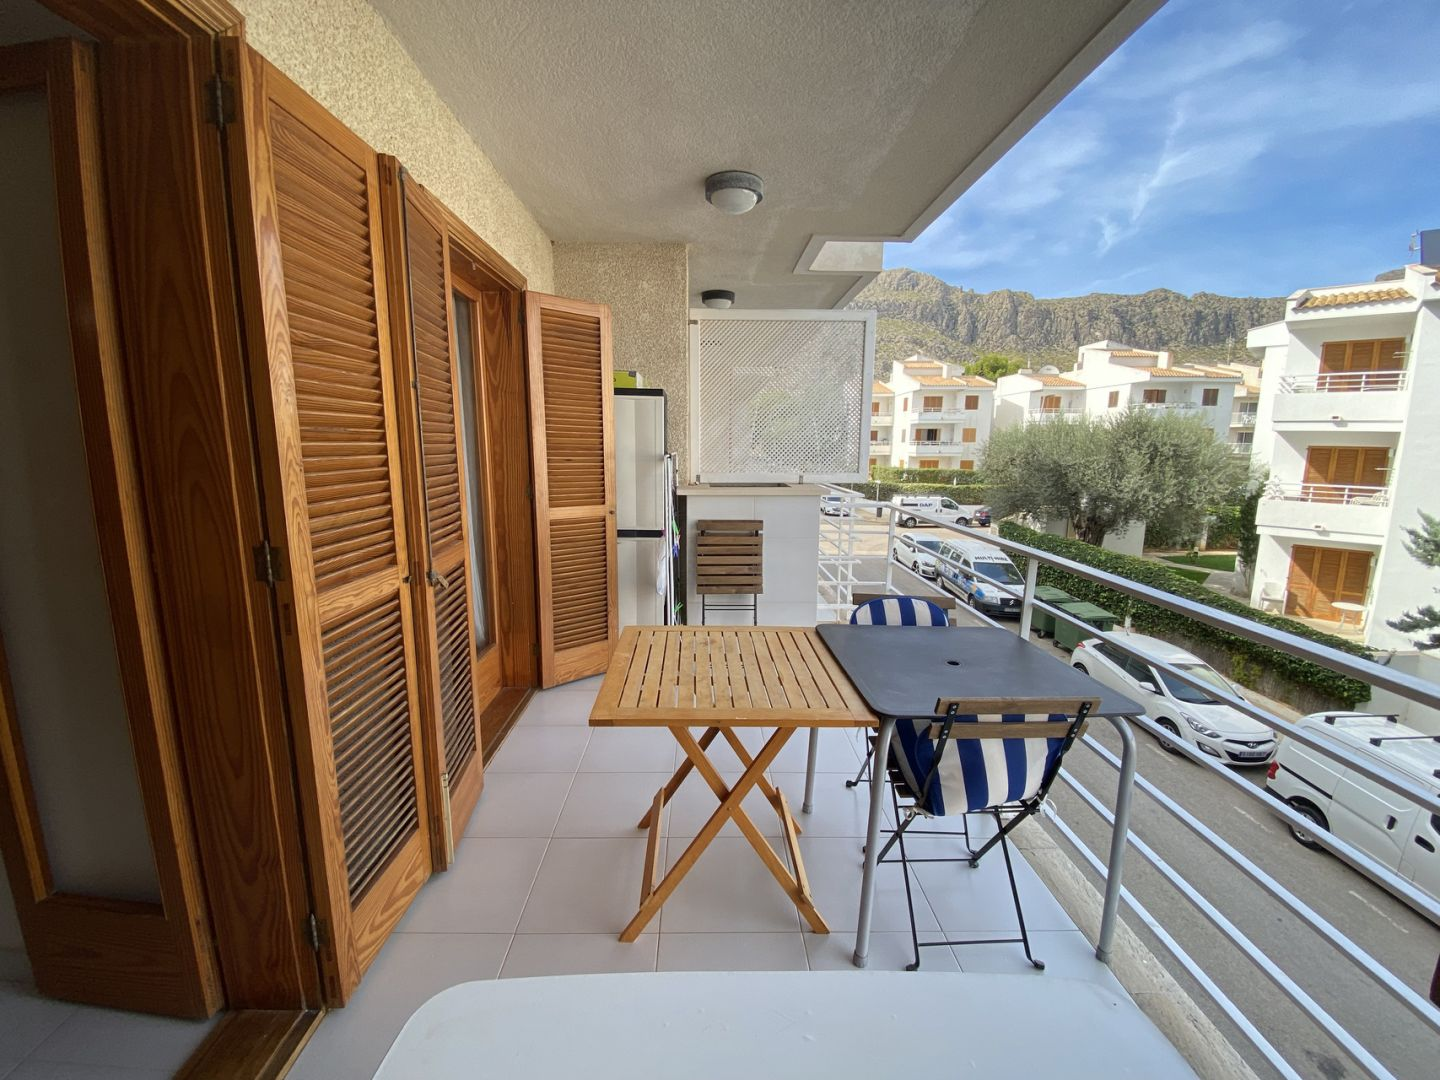 1 Bed Apartment for sale in Puerto Pollensa 0